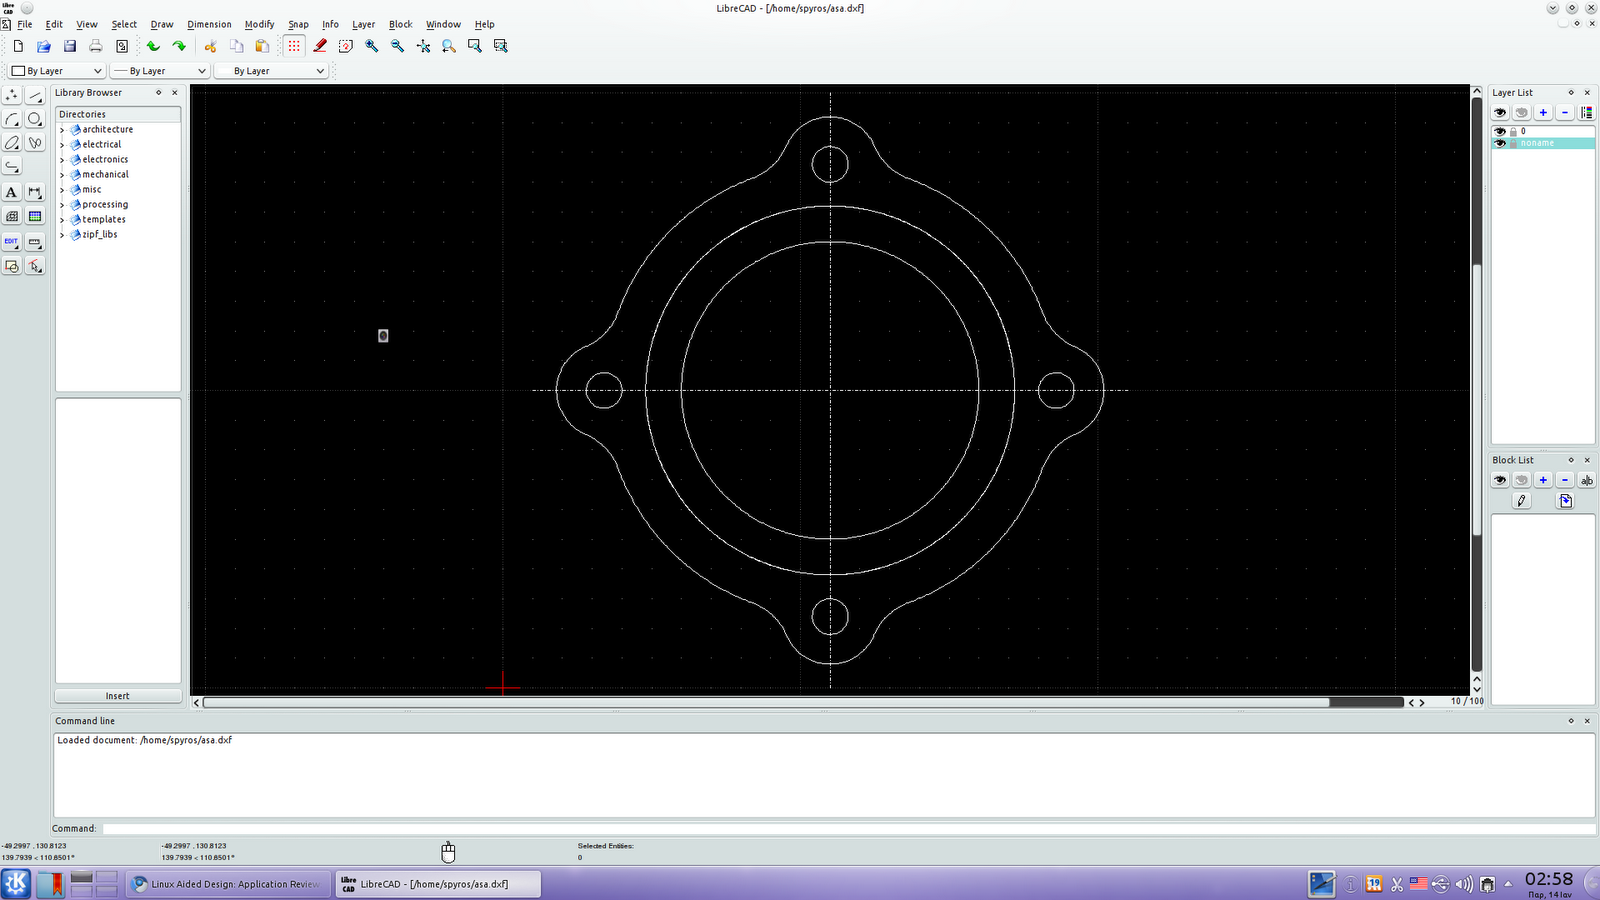 LibreCAD Review http://linuxaideddesign.blogspot.com/2011/01/application-review-librecad-part-i.html